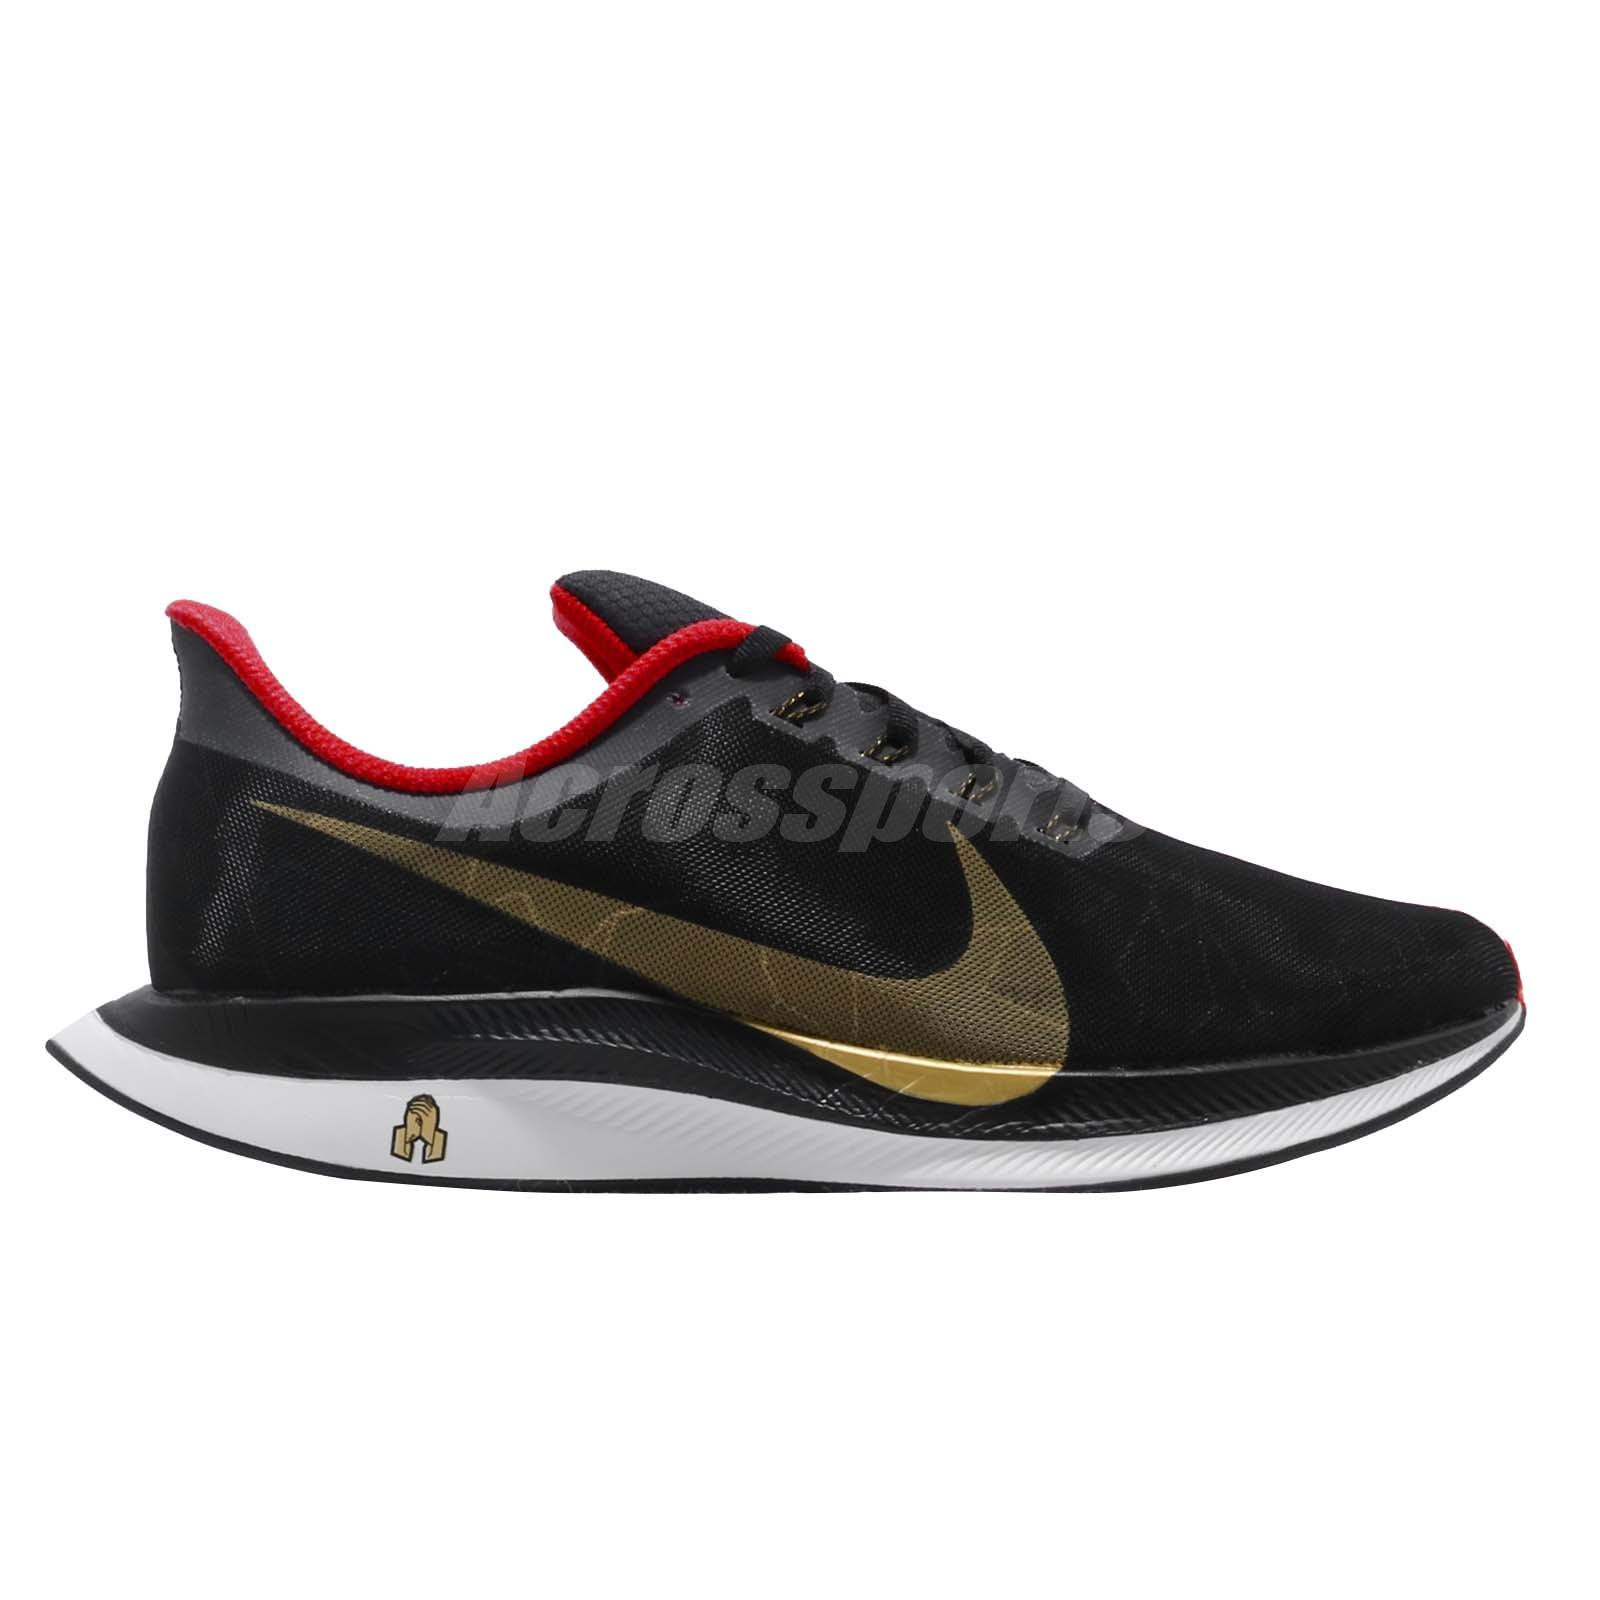 new product 4dbe1 00fb8 Details about Nike Zoom Pegasus 35 Turbo CNY Chinese New Year Men Shoes  Sneakers BV6656-016